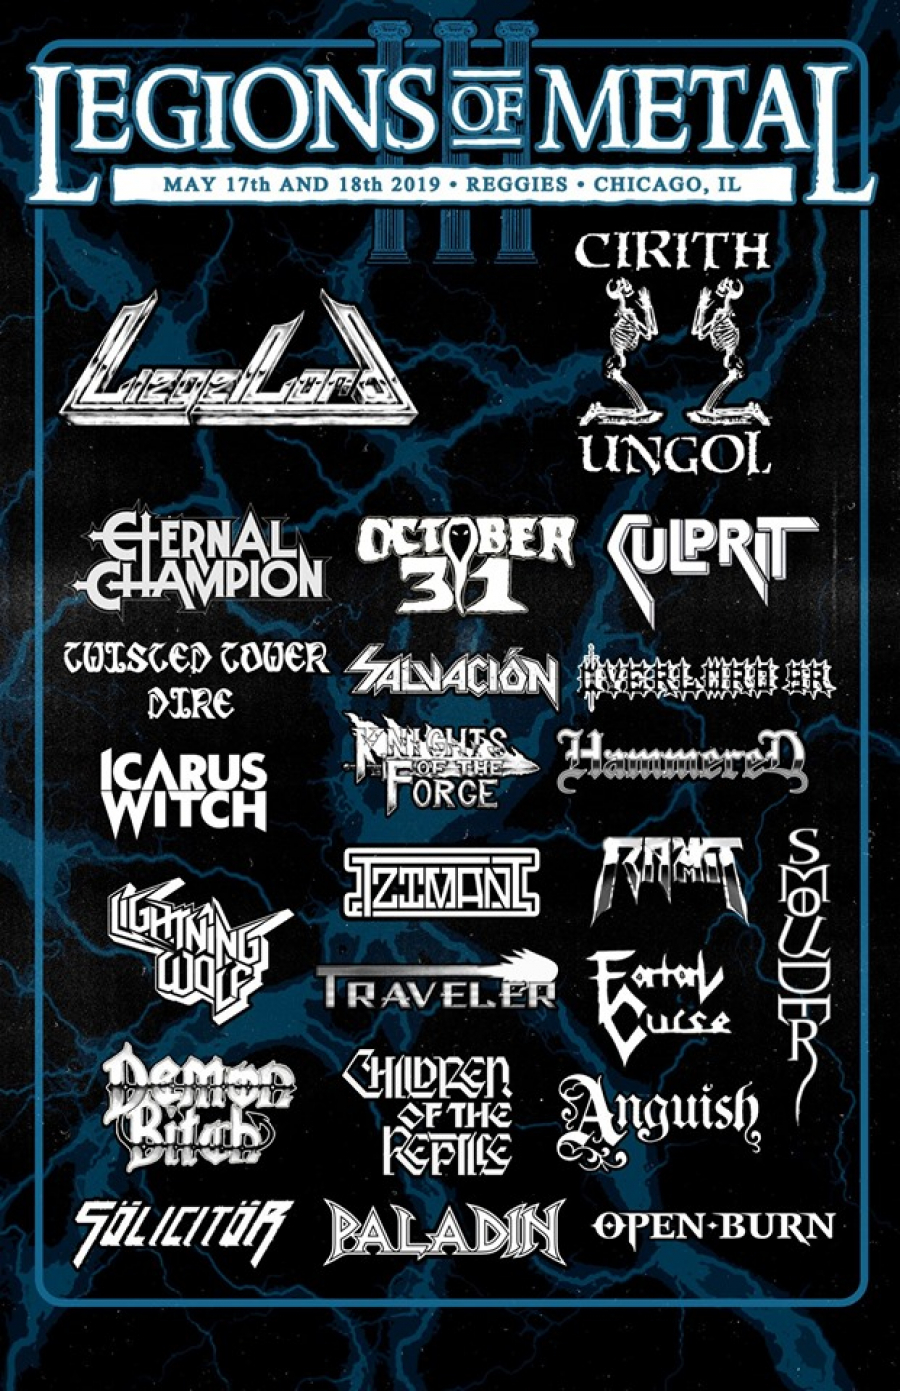 Legions of Metal Festival 2019 in Chicago